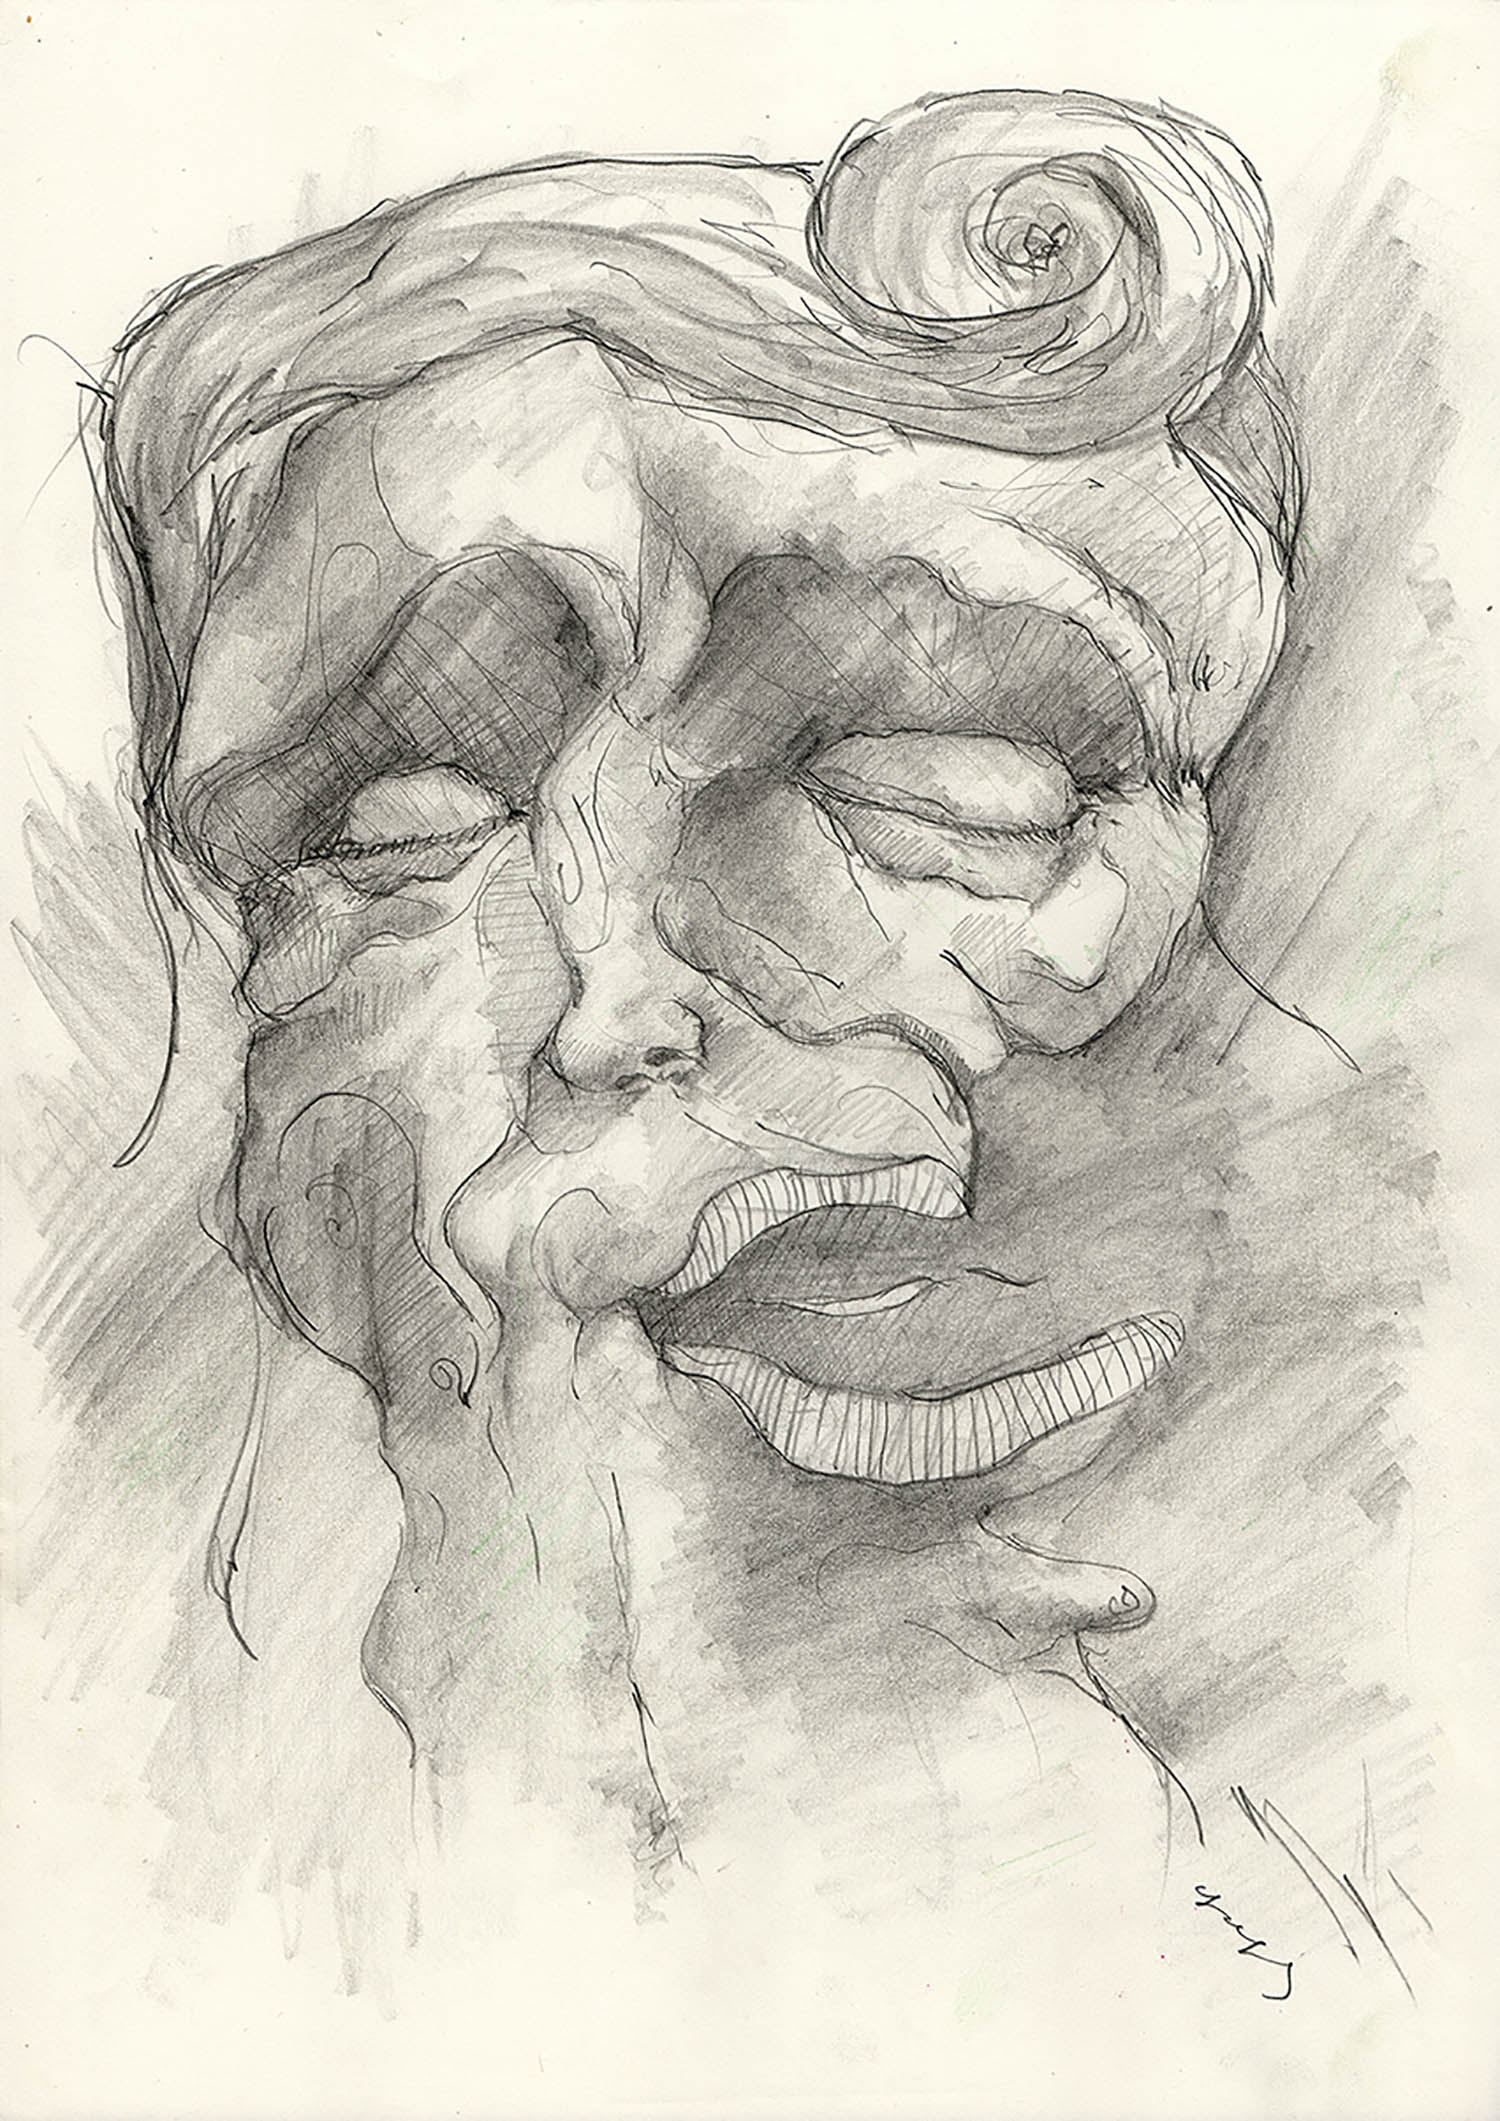 'Sleepy Middle-Aged Man Trying to Laugh Out of Politeness - He Froze and Remained Like That', a figurative pencil potrait drawing by Greek multidisciplinary artist Kostas Gogas.